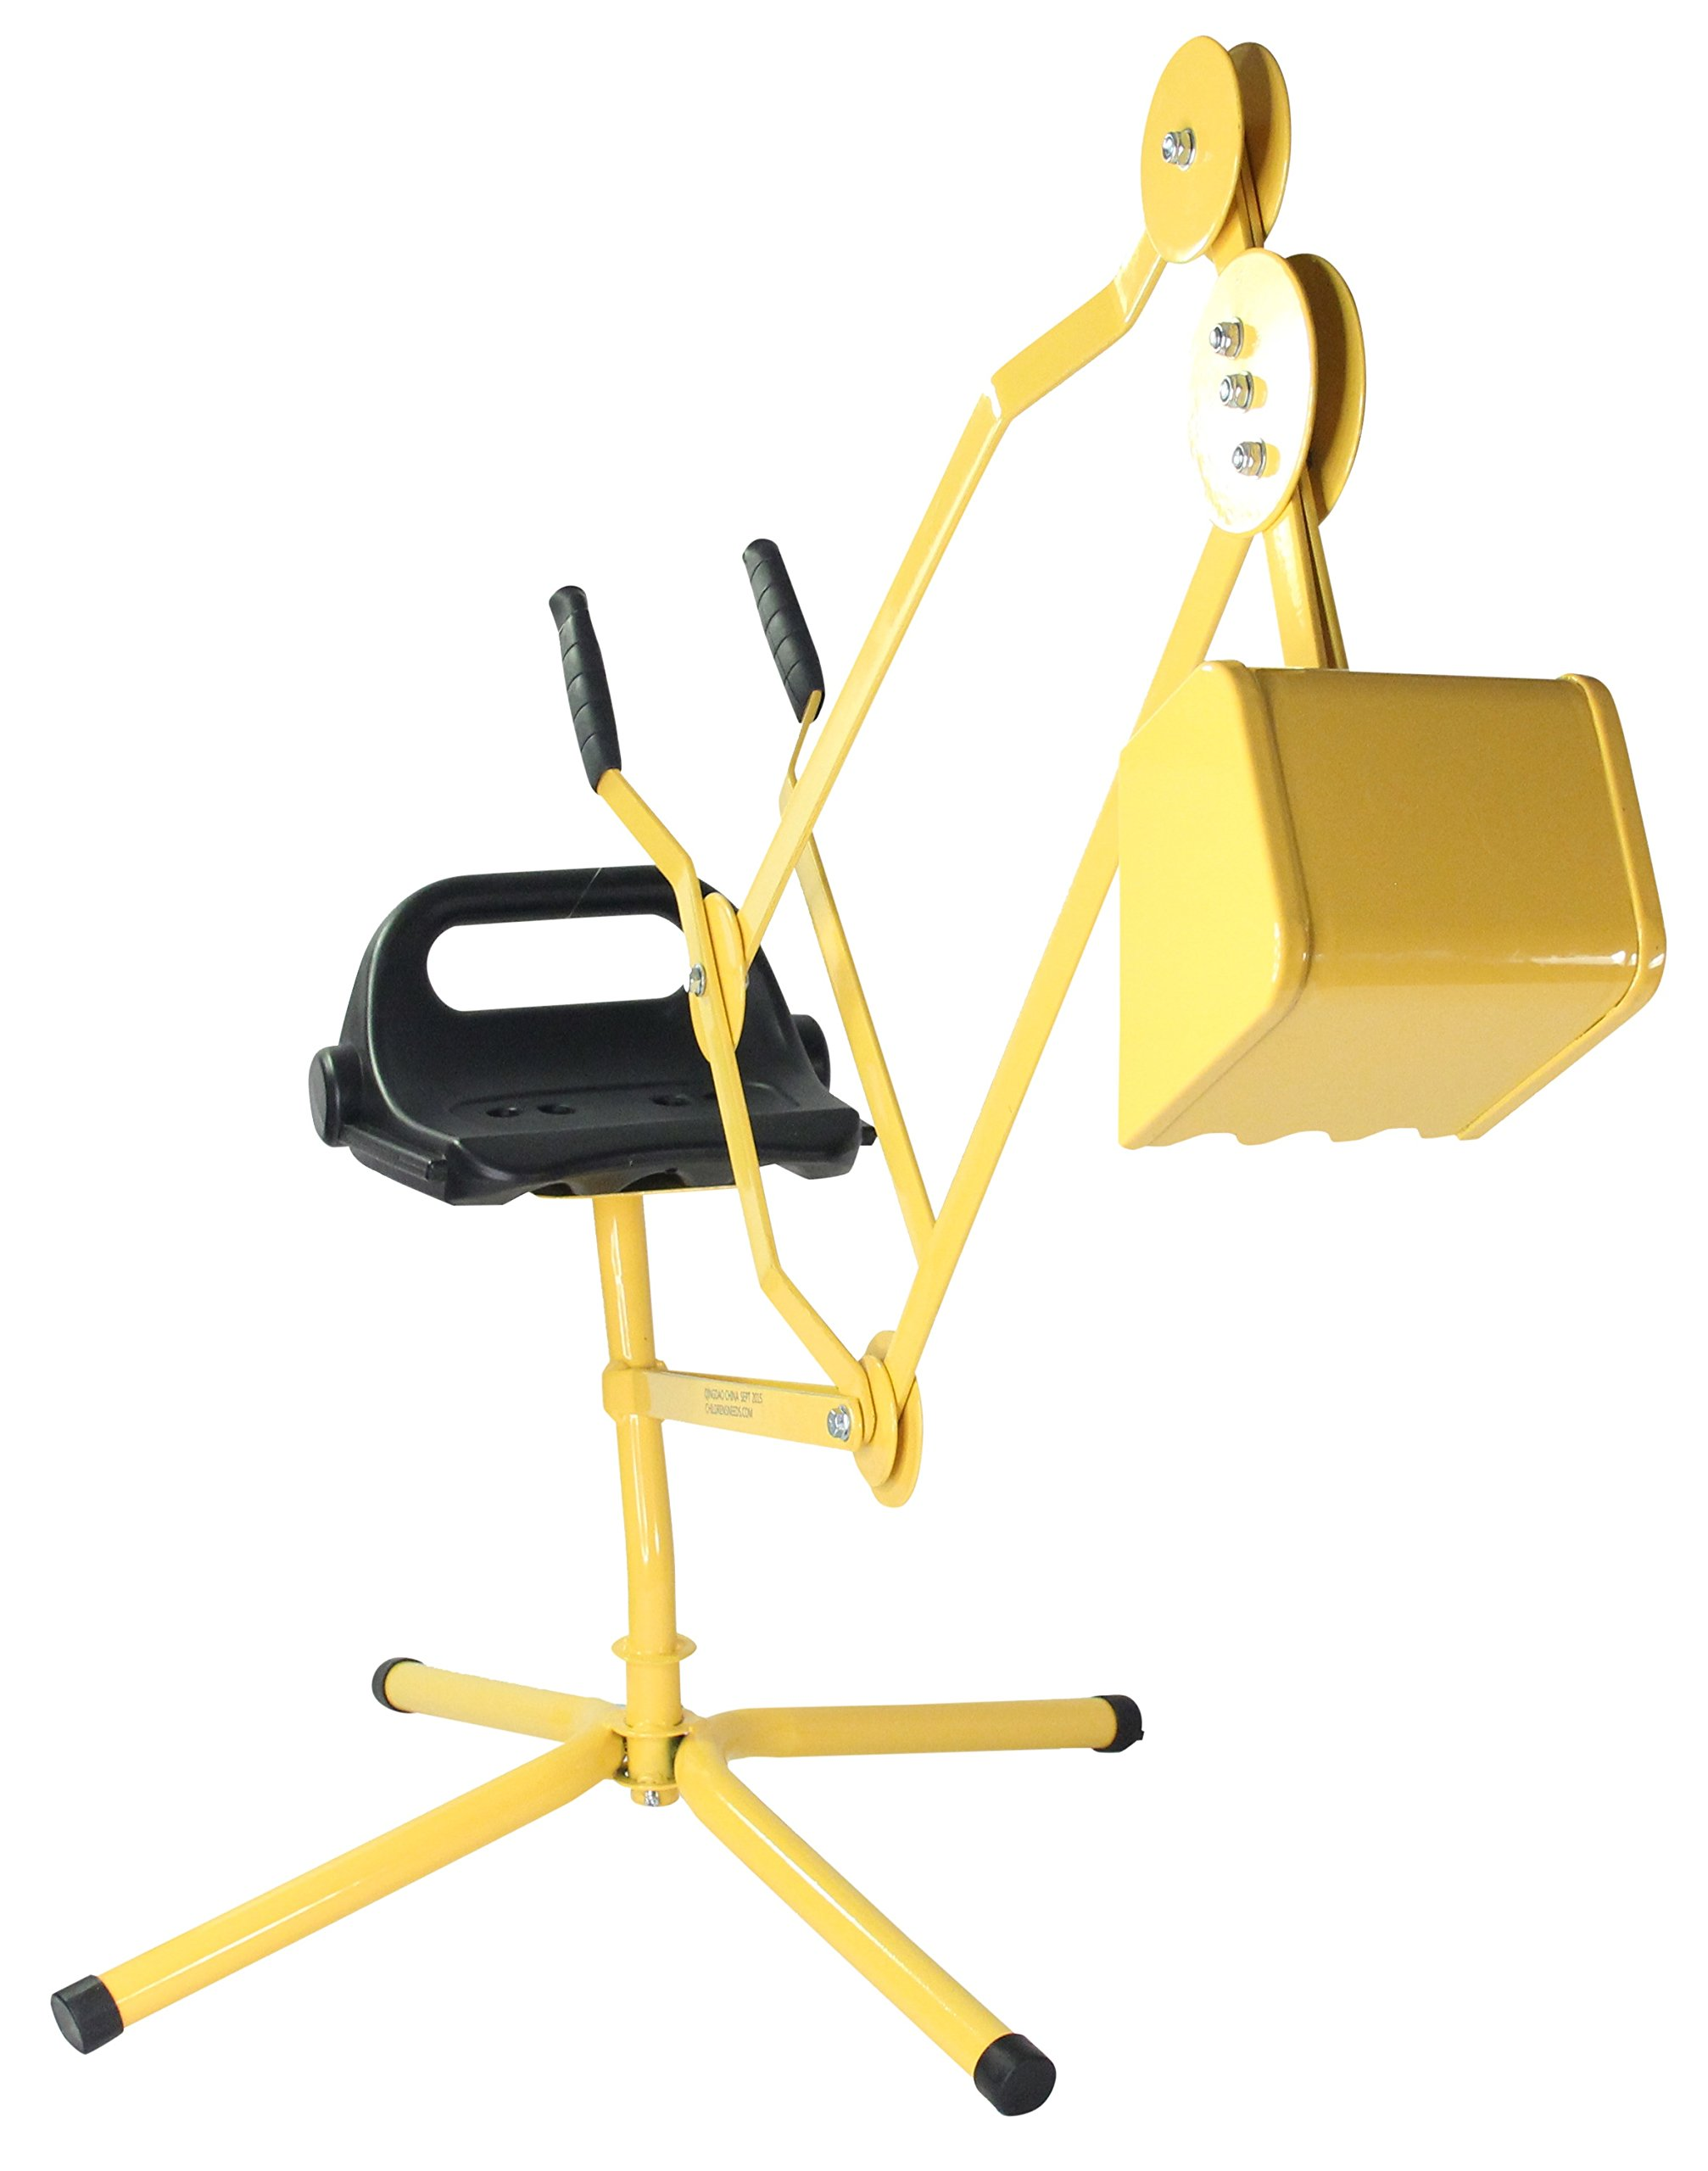 Childrensneeds.com Legged Sand Digger Toy Backhoe for Snow, Sand, Beach, Dirt, A Durable Metal Outdoor Ride-On Excavator Toy for Ages 3 & Up (Yellow) by Childrensneeds.com